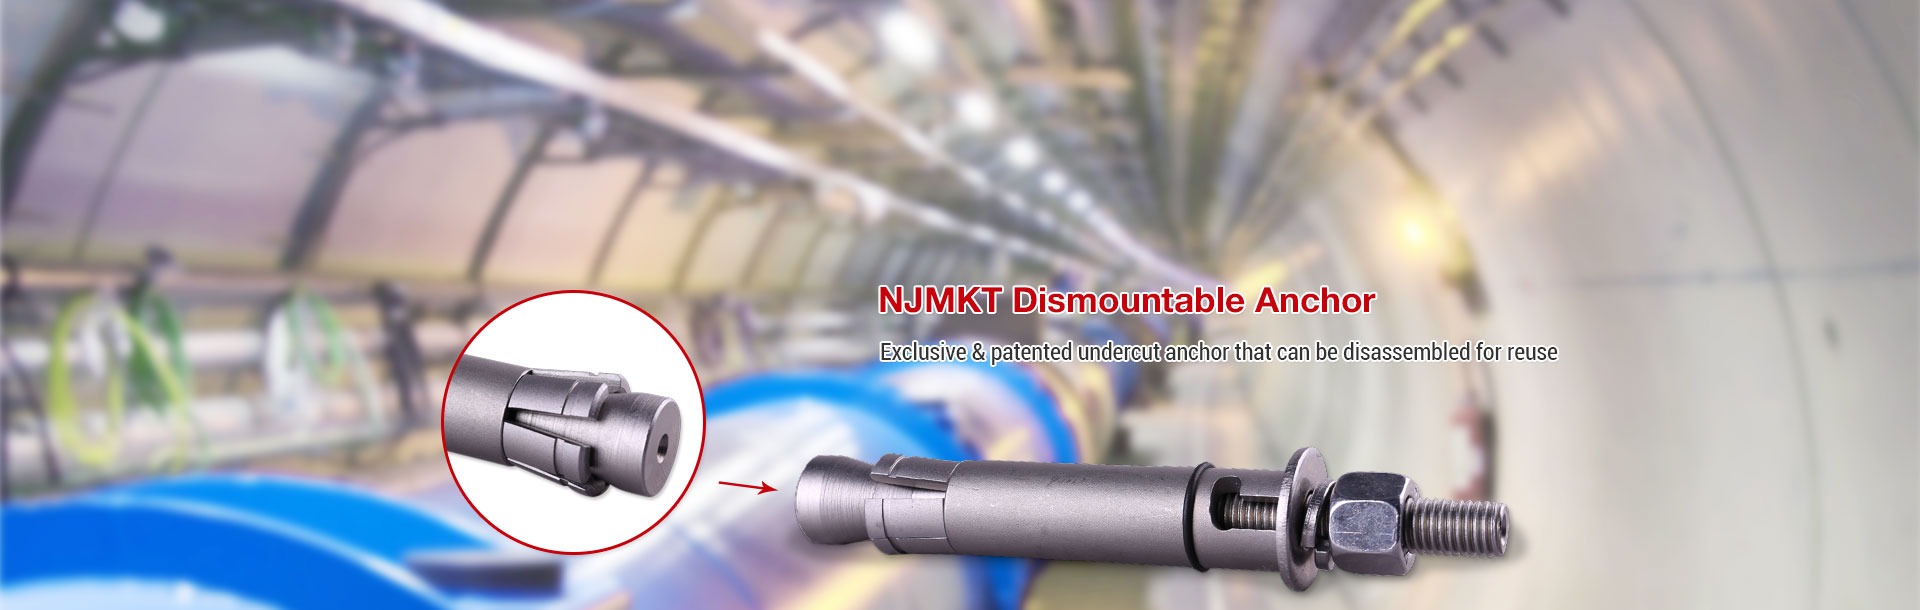 NJMKT Dismountable Anchor